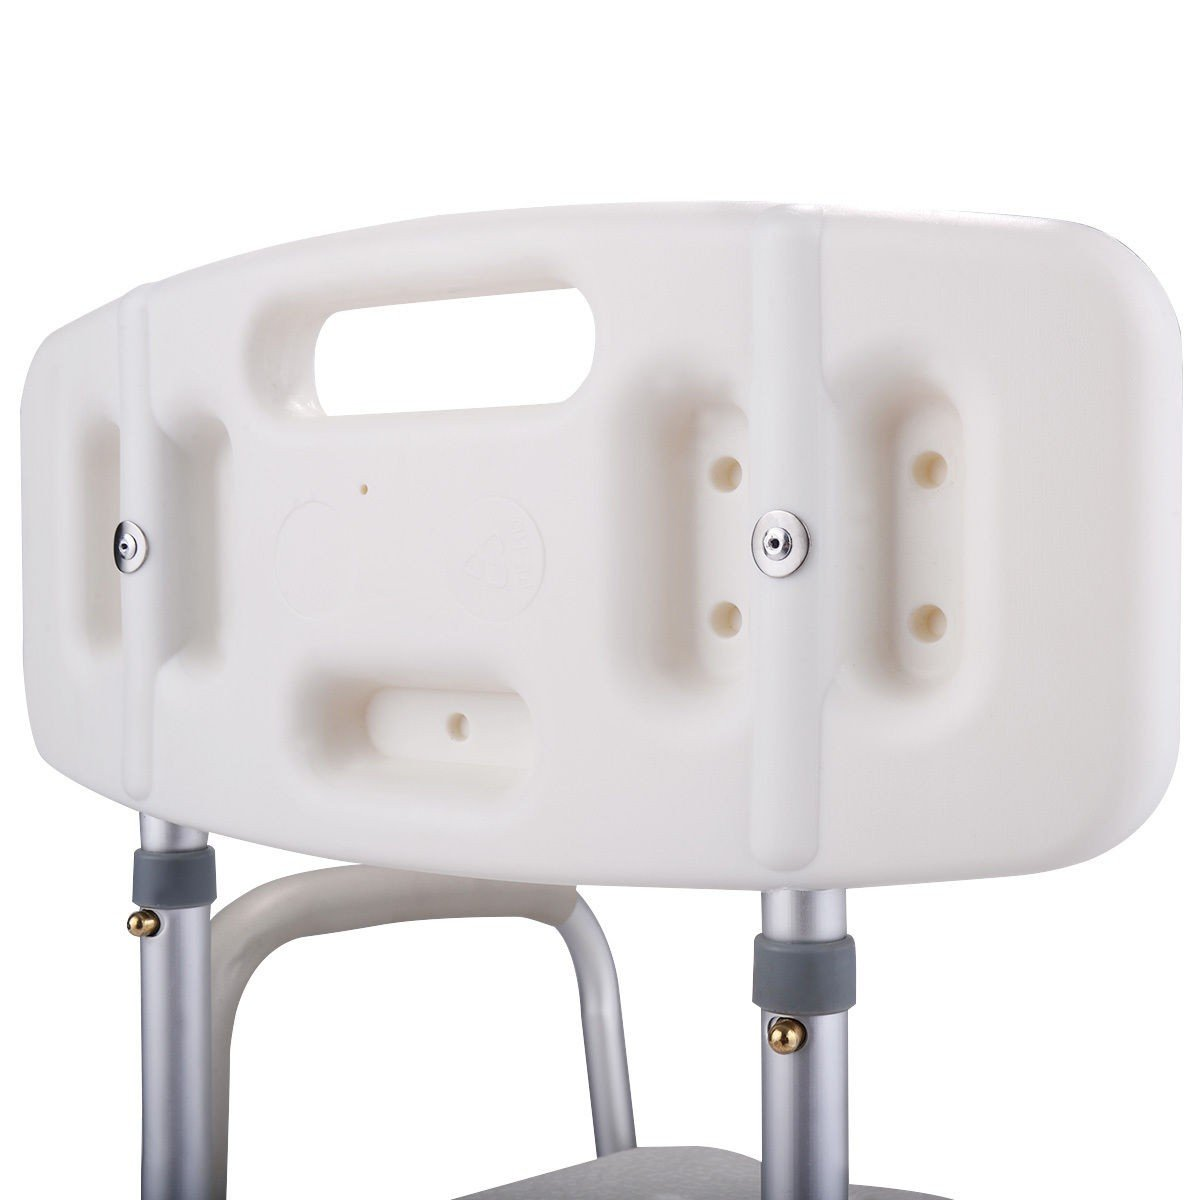 6 Height Adjustable Medical Shower Chair Stool Bath Tub w/ Back ...